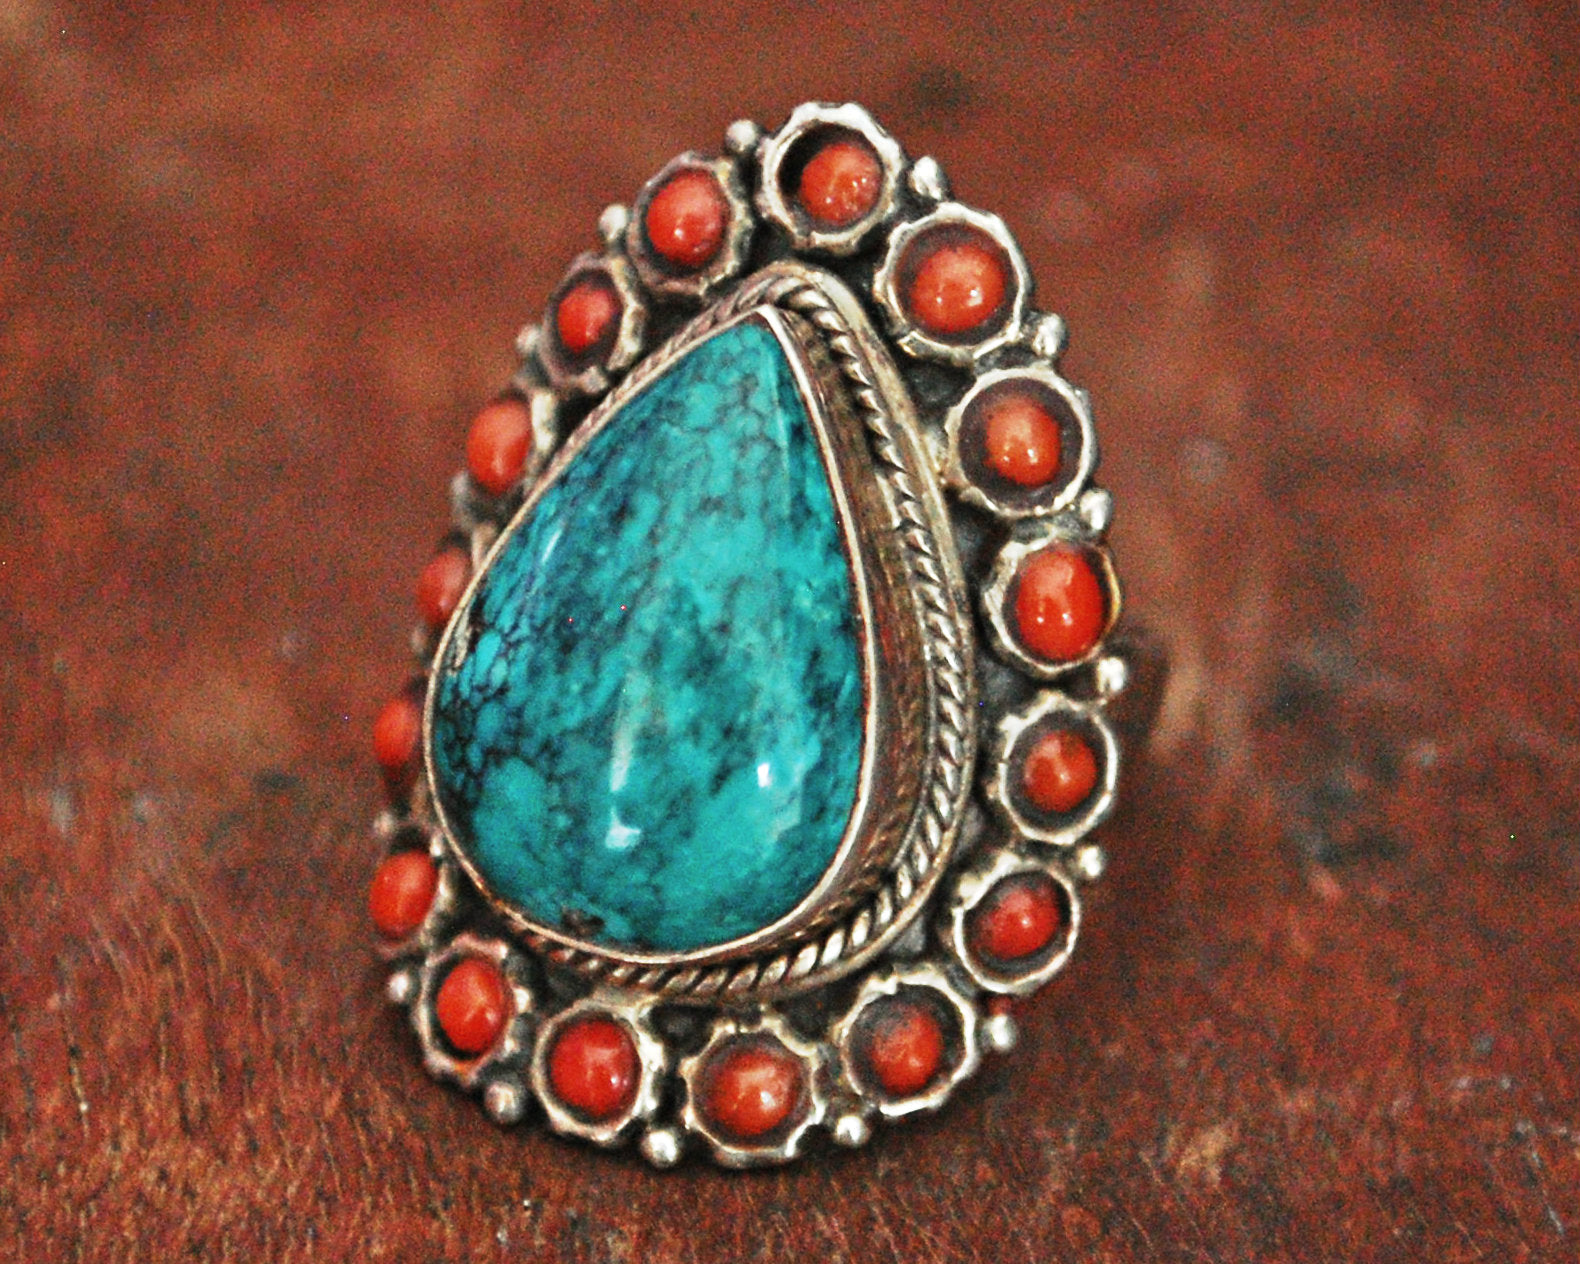 Ethnic Turquoise and Coral Ring from India